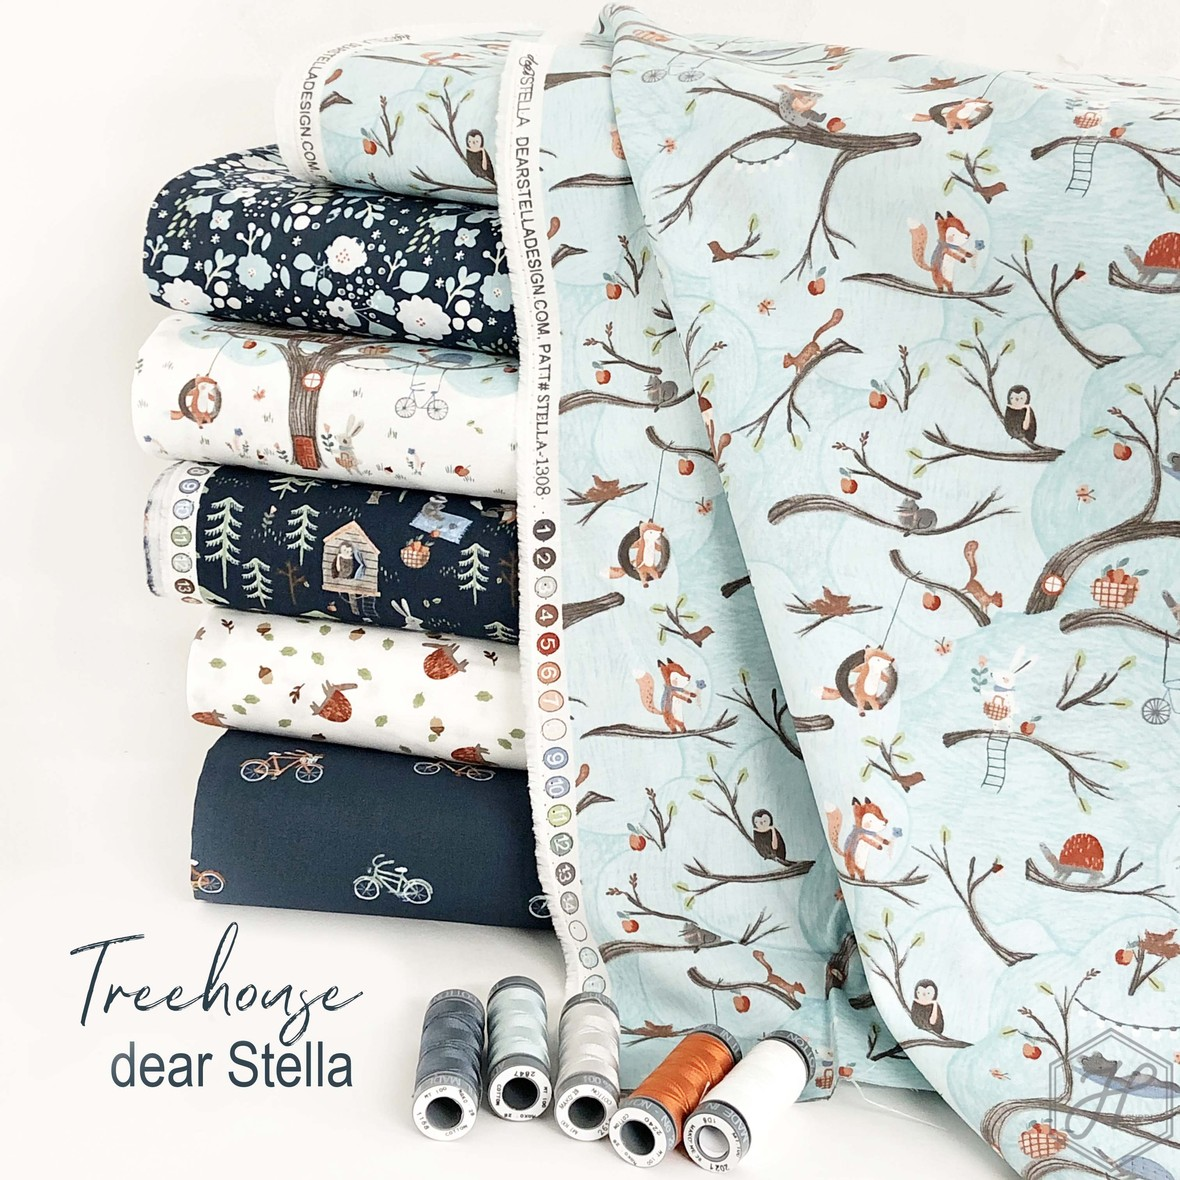 Treehouse Fabric Poster Dear Stellajpg